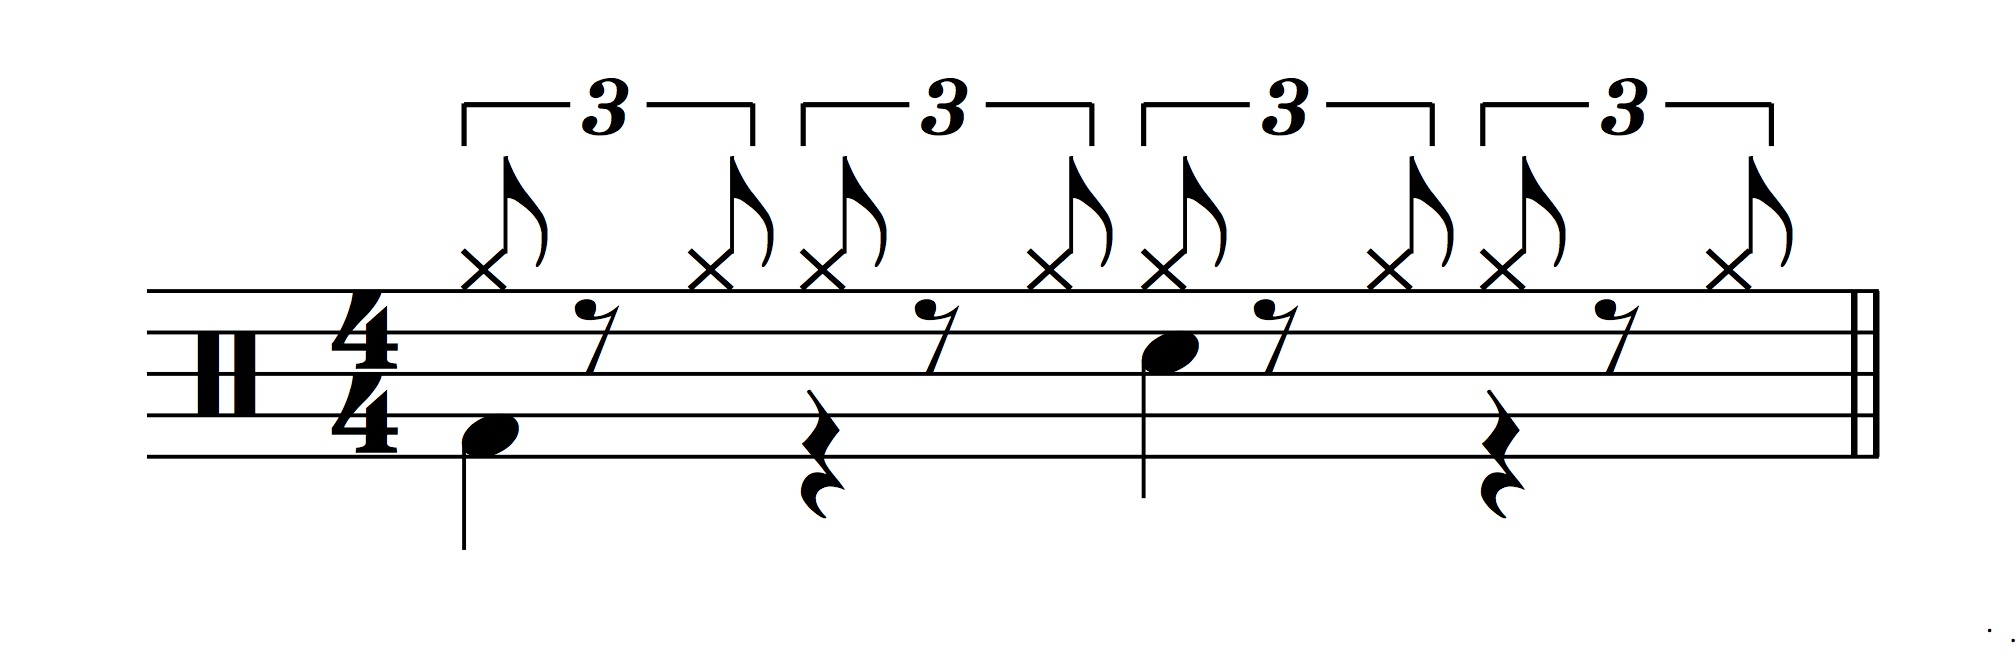 Figure 9.: Prototypical drum beat for a half-time shuffle.